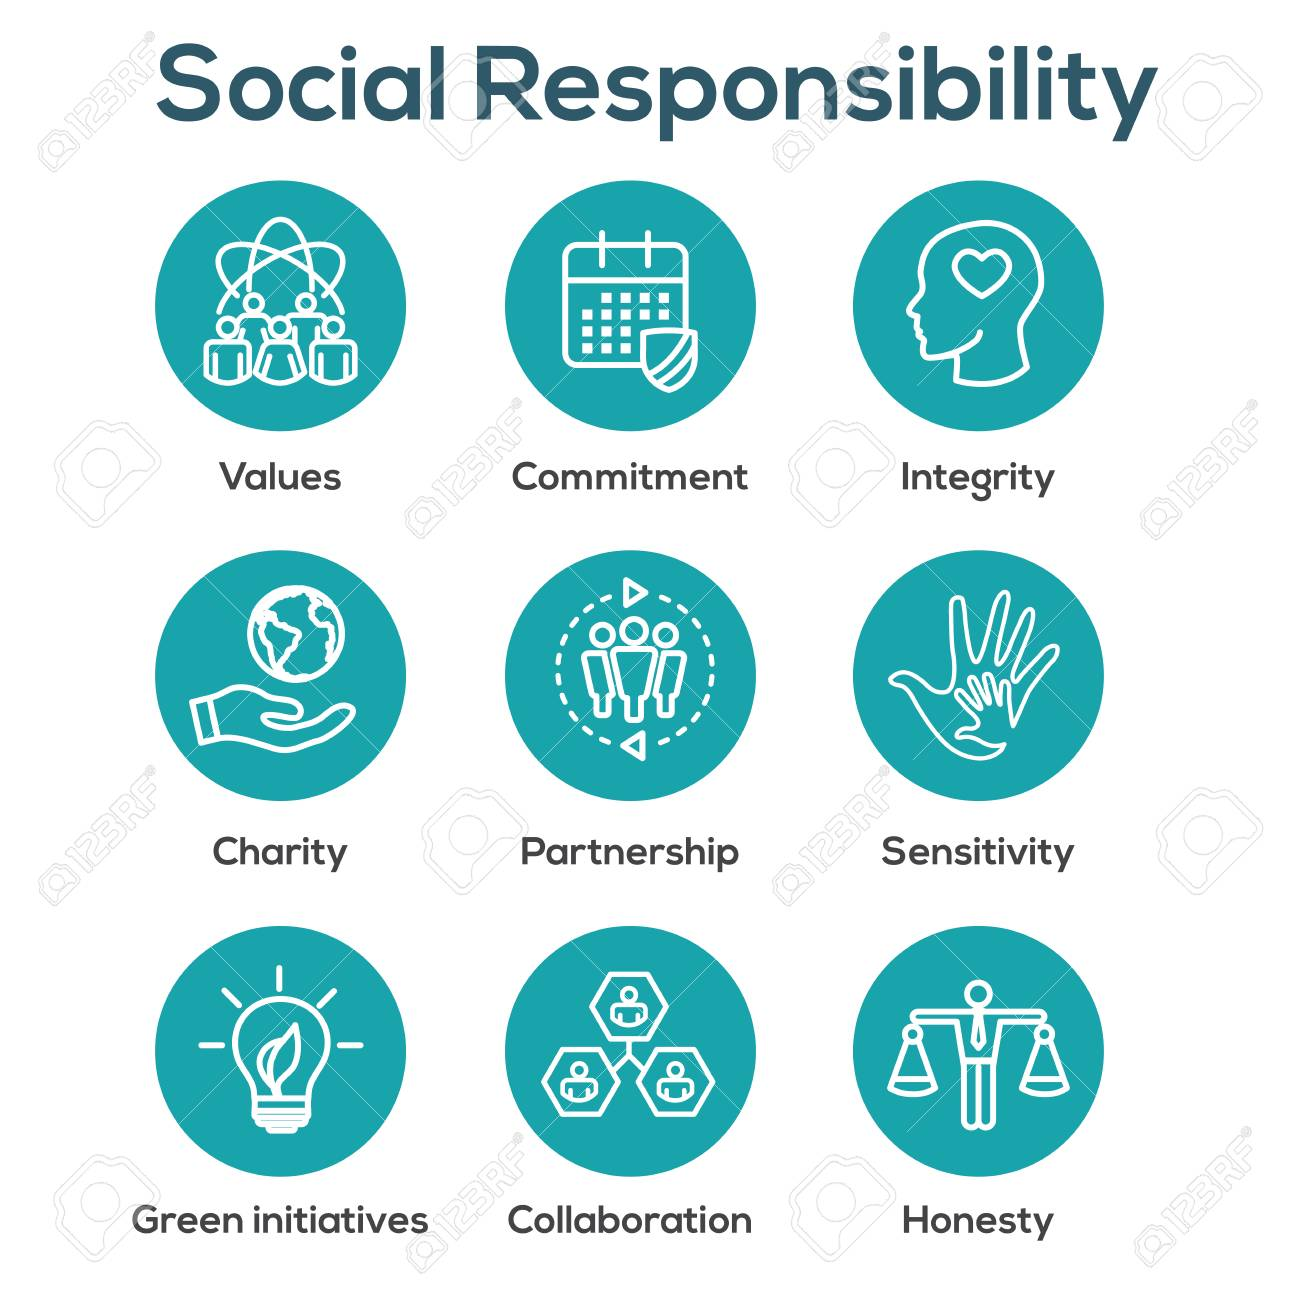 Social Responsibility Outline Icon Set with Honesty, integrity, & collaboration, etc - 99233335